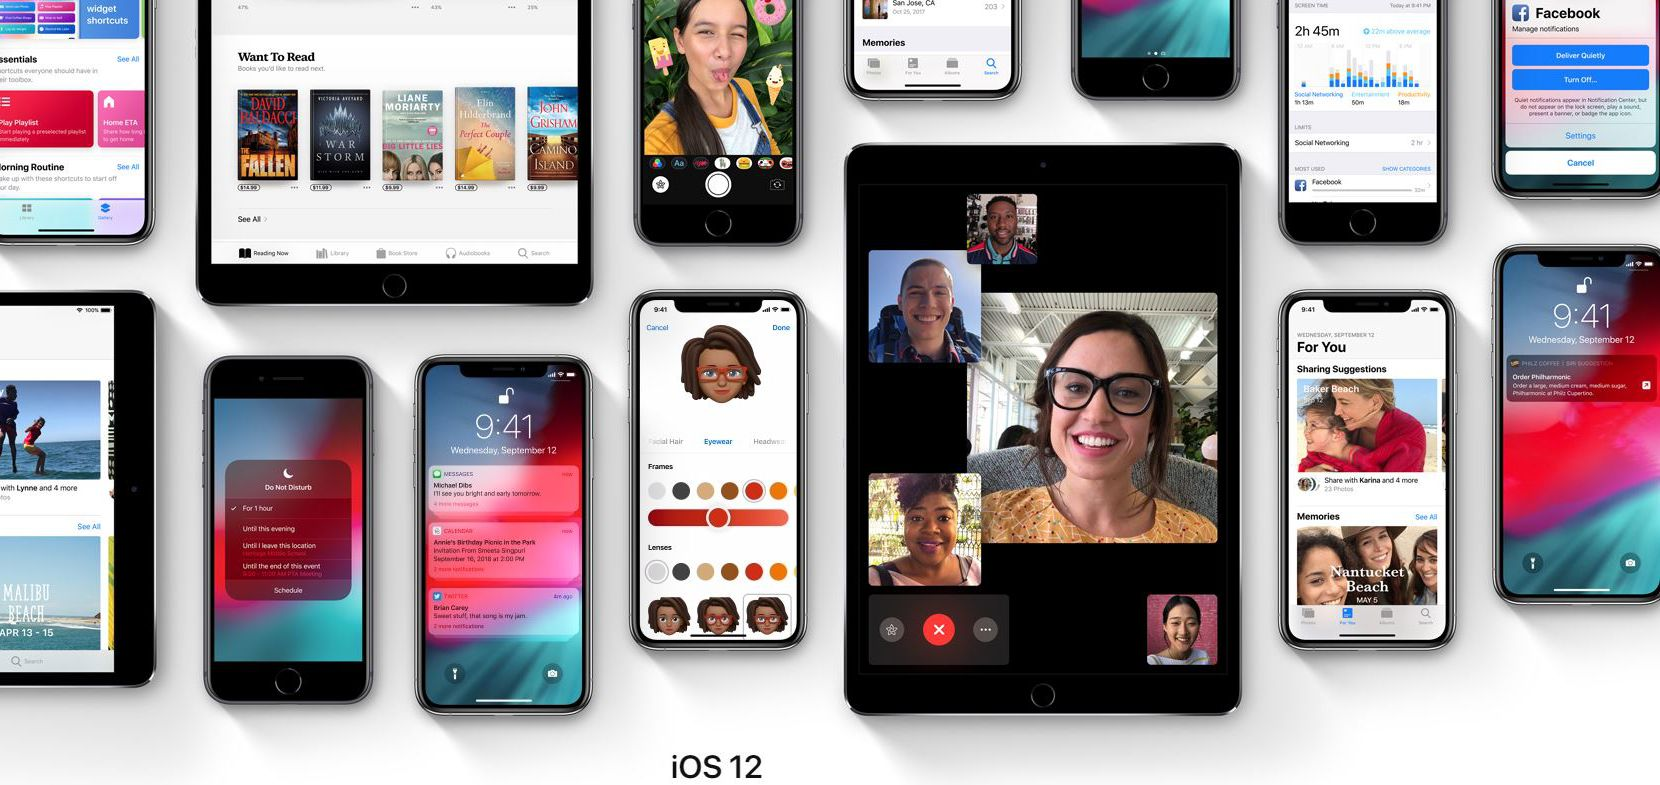 iOS 12 is full of new features if your iPhone can handle the upgrade.